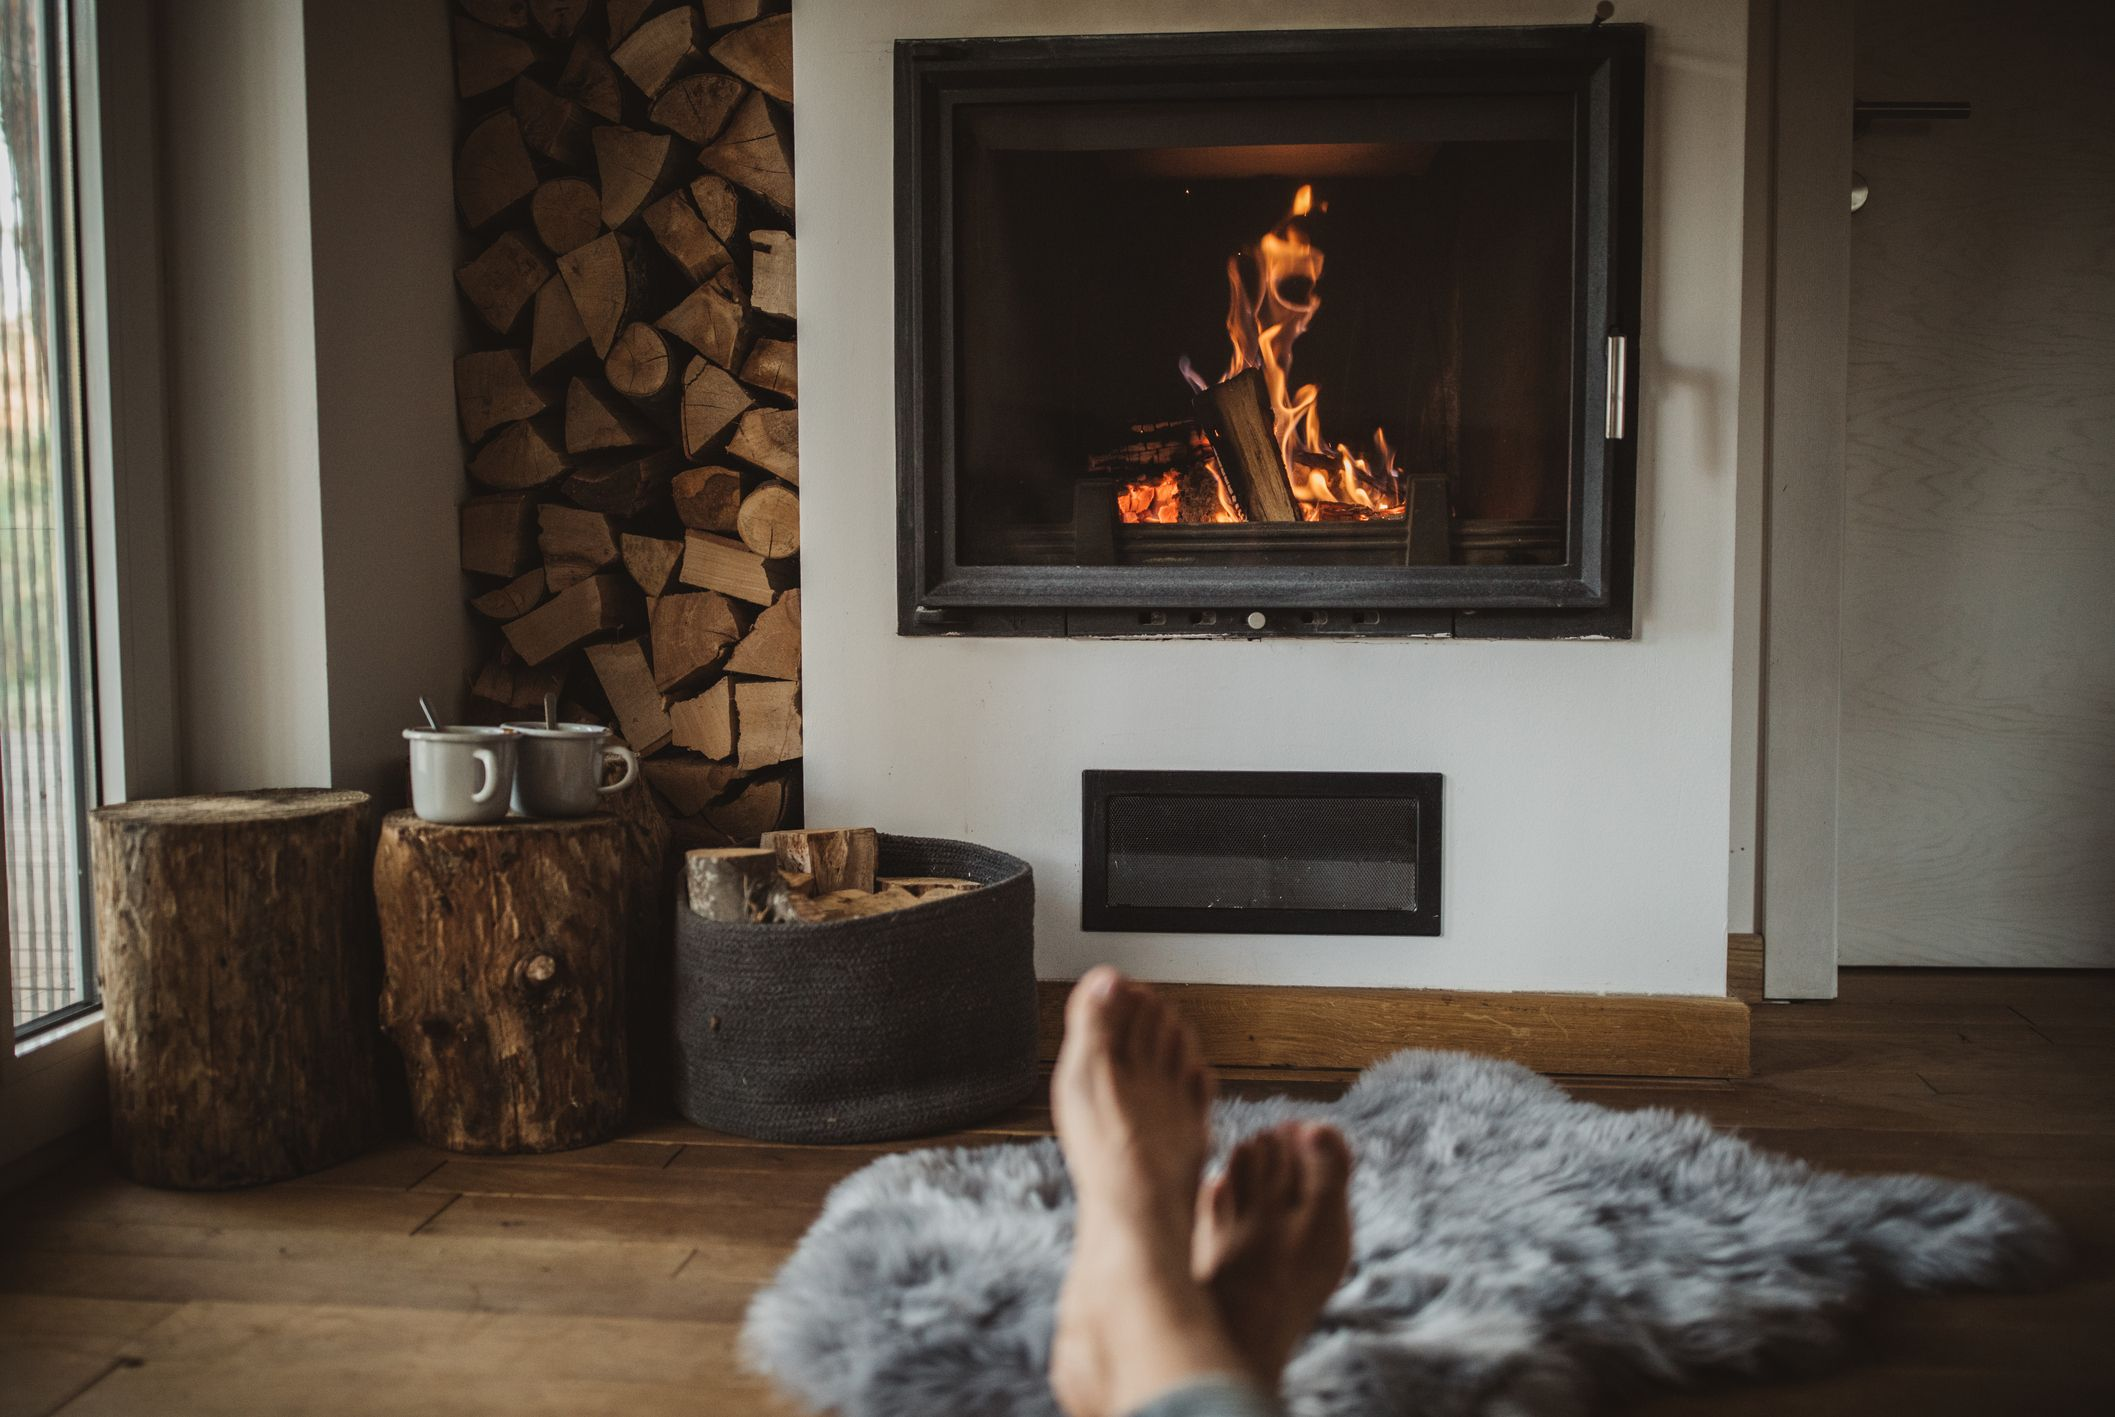 Forget Hygge, these 4 words from around the world sum up how we feel in winter